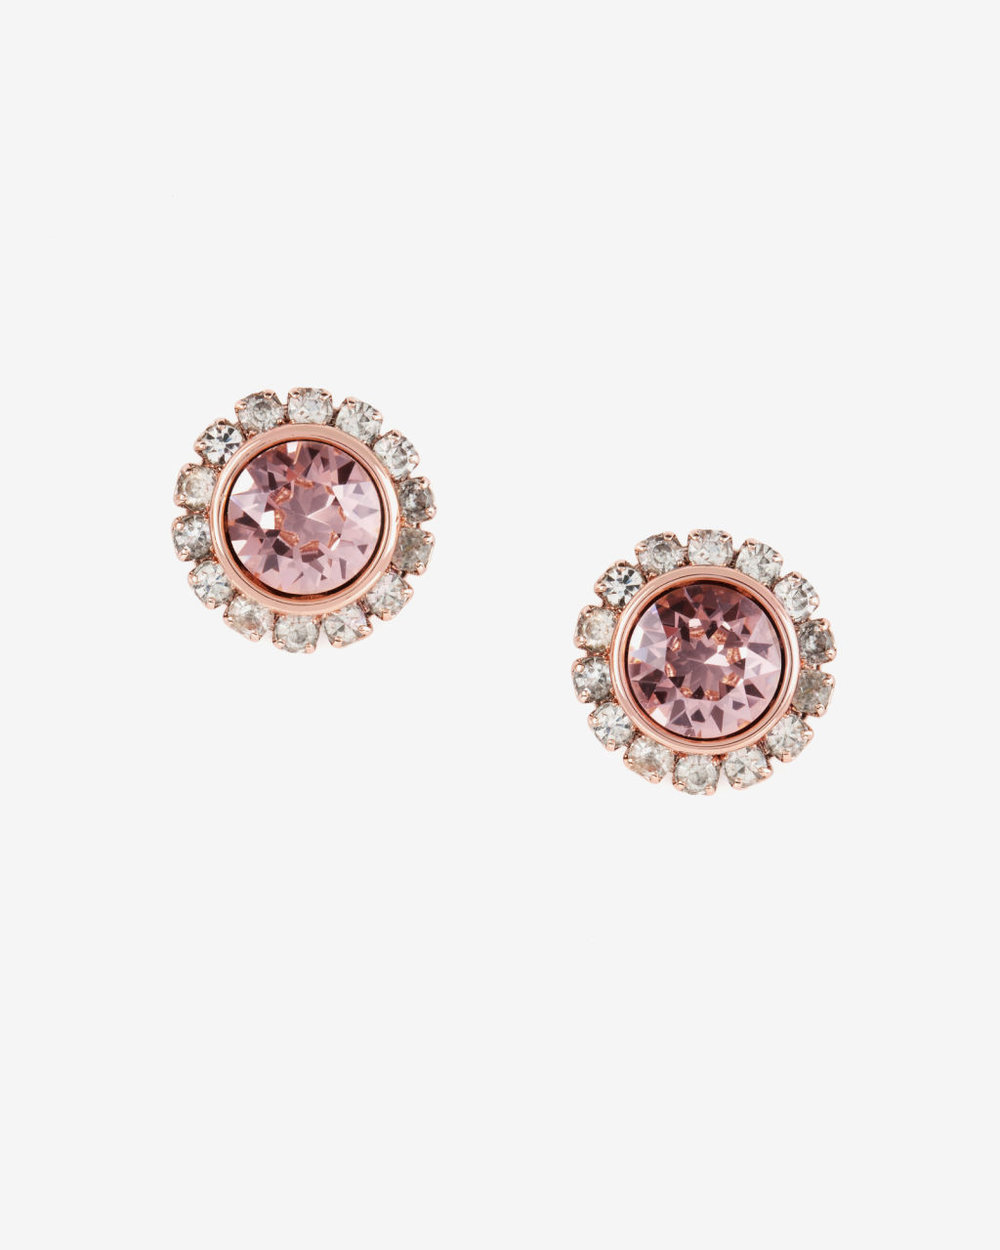 Copy of uk-Womens-Accessories-Jewellery-SULLY-Crystal-stud-earrings-Light-Pink-XS5W_SULLY_58-LIGHT-PINK_1.jpg.jpg